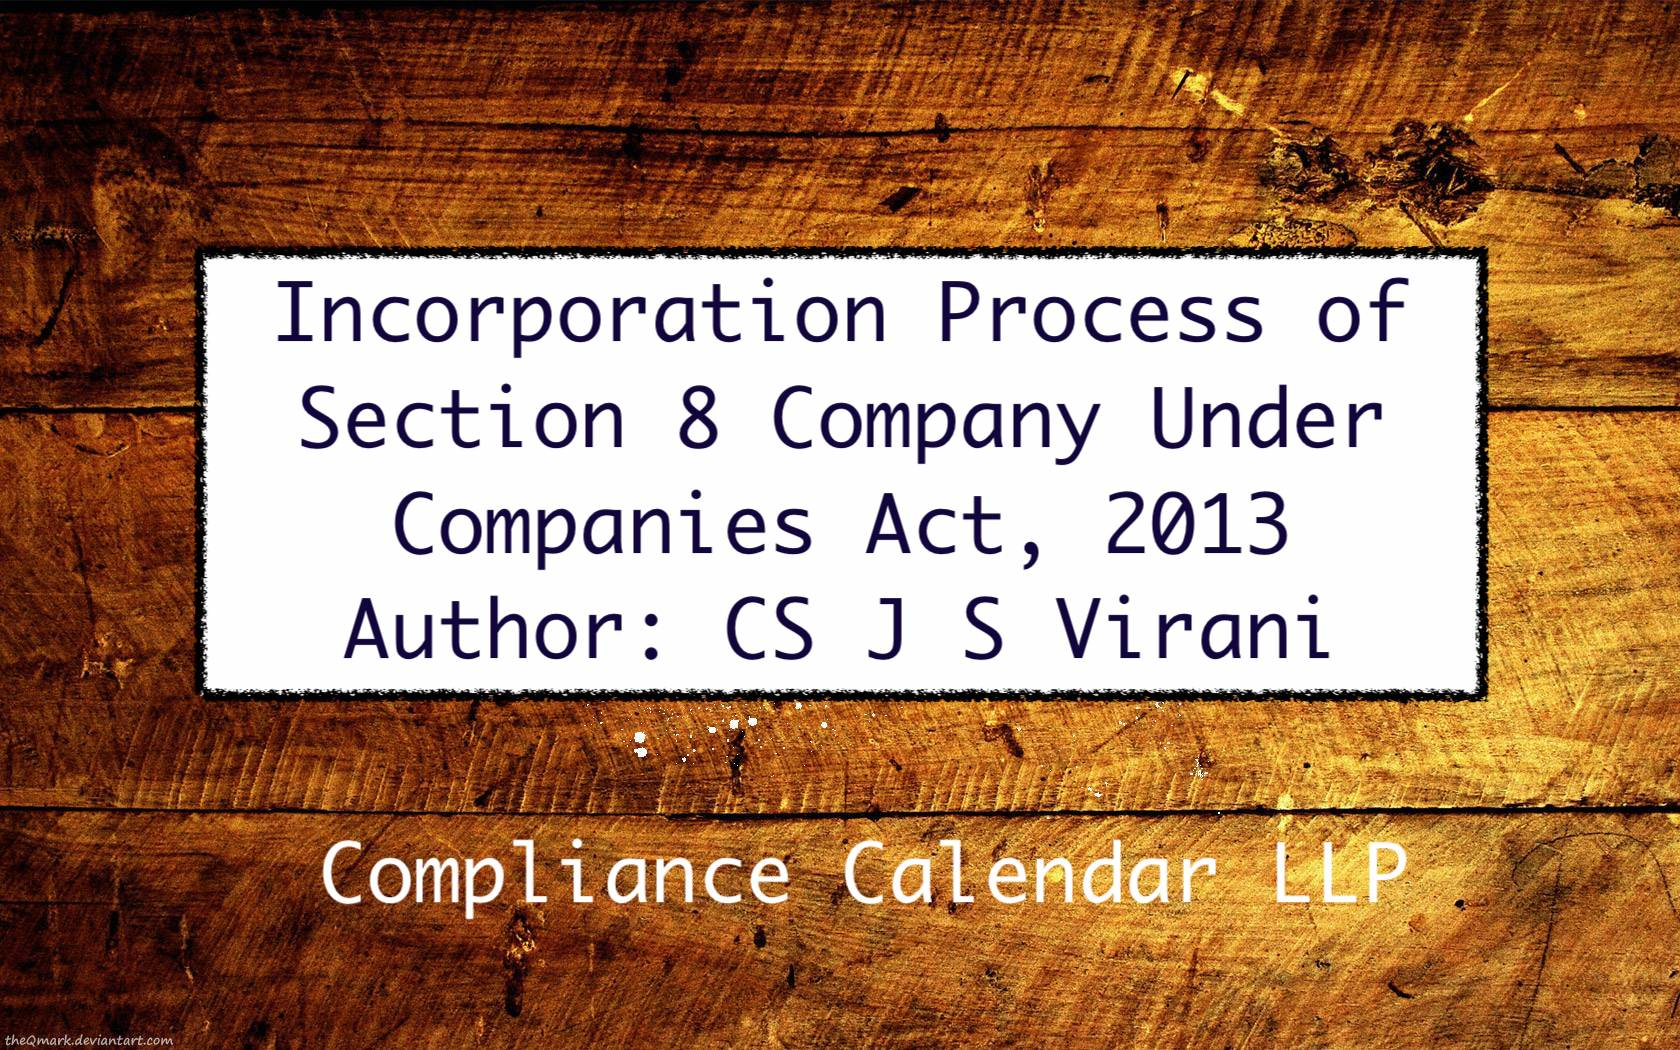 Blogs | Compliance Calendar Llp throughout Compliance Calendar Under Companies Act 2013